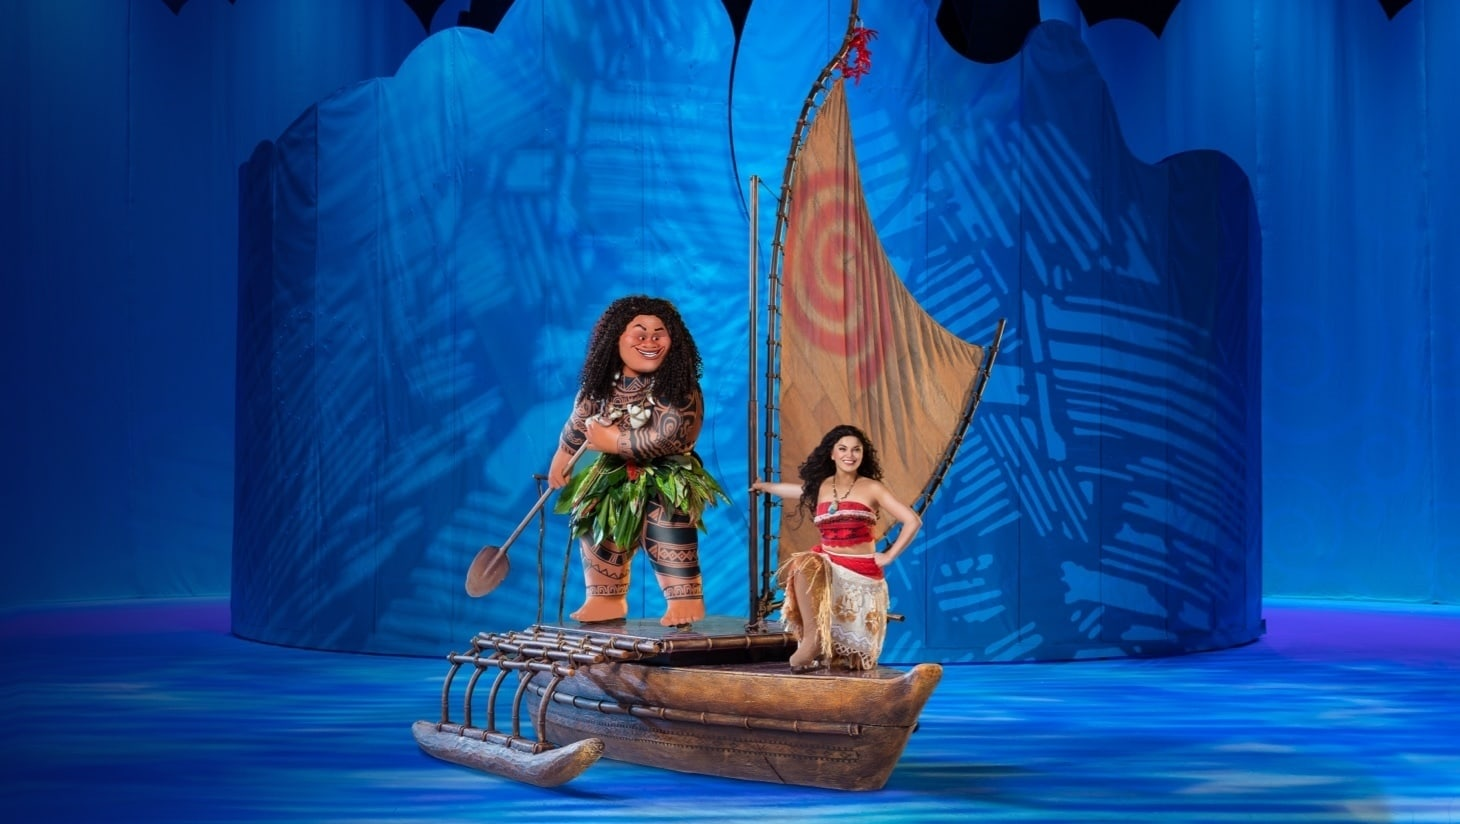 Maui and Moana performing on a boat in Disney On Ice